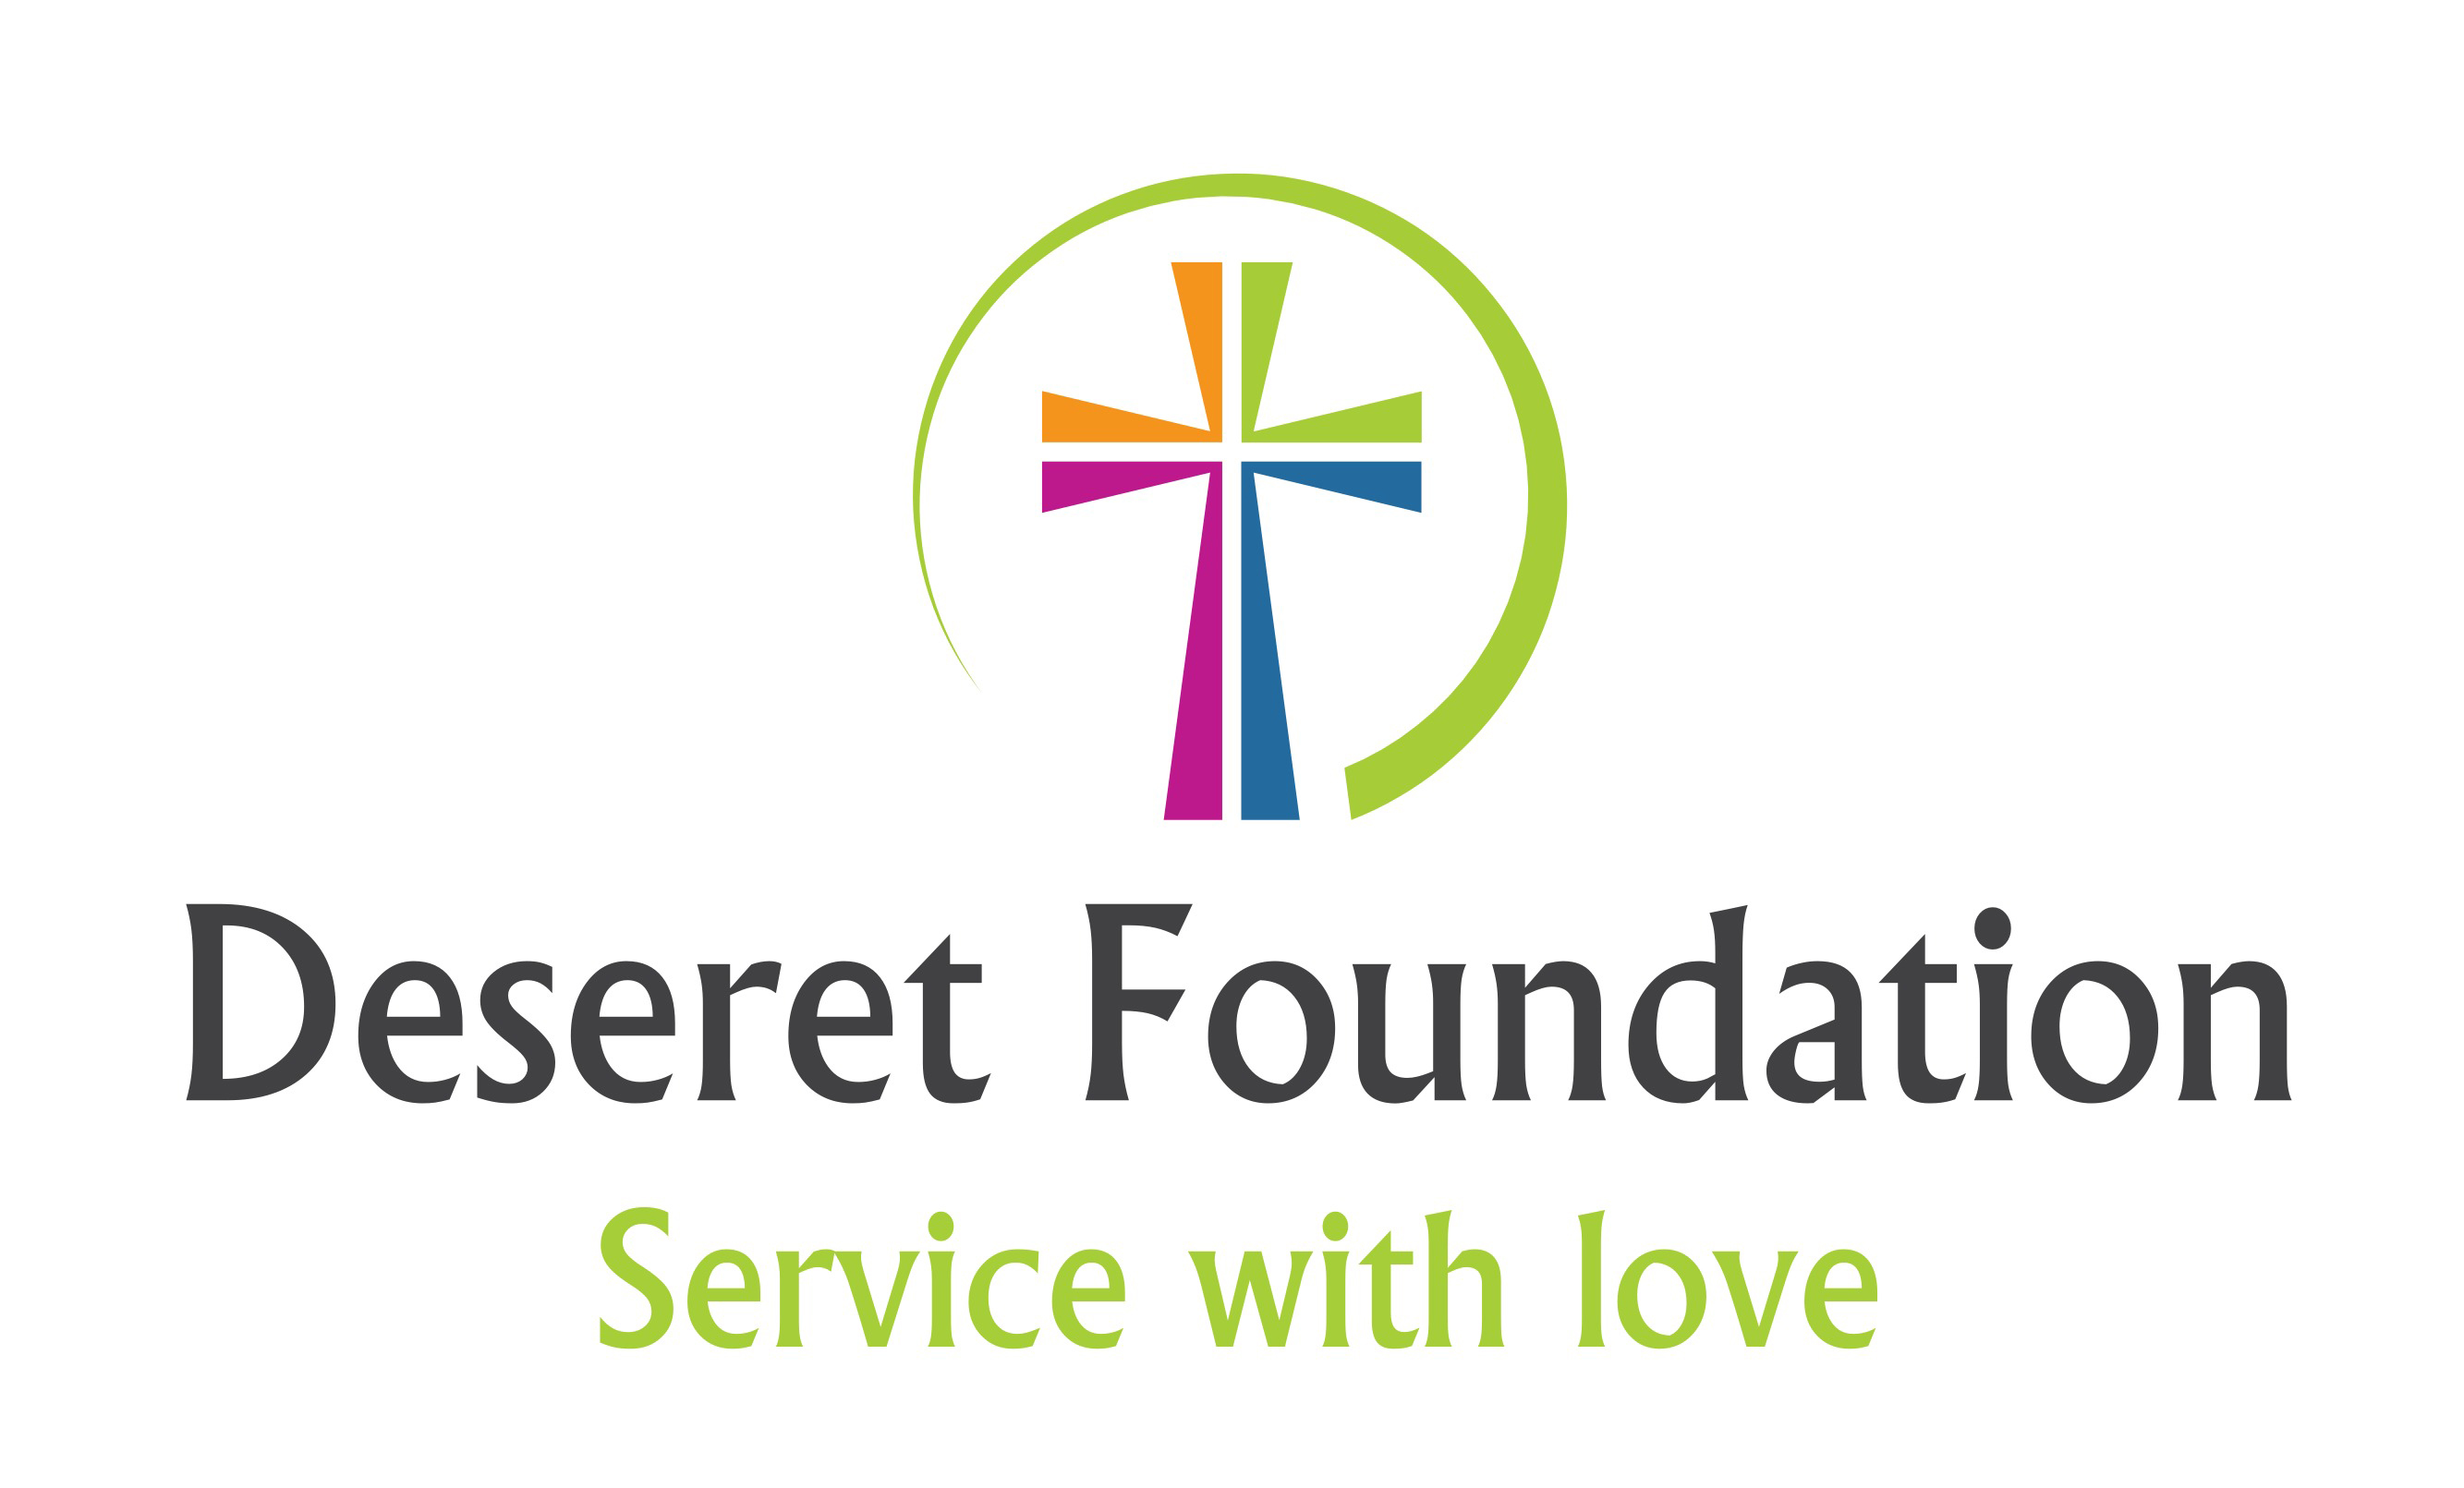 Deseret Foundation